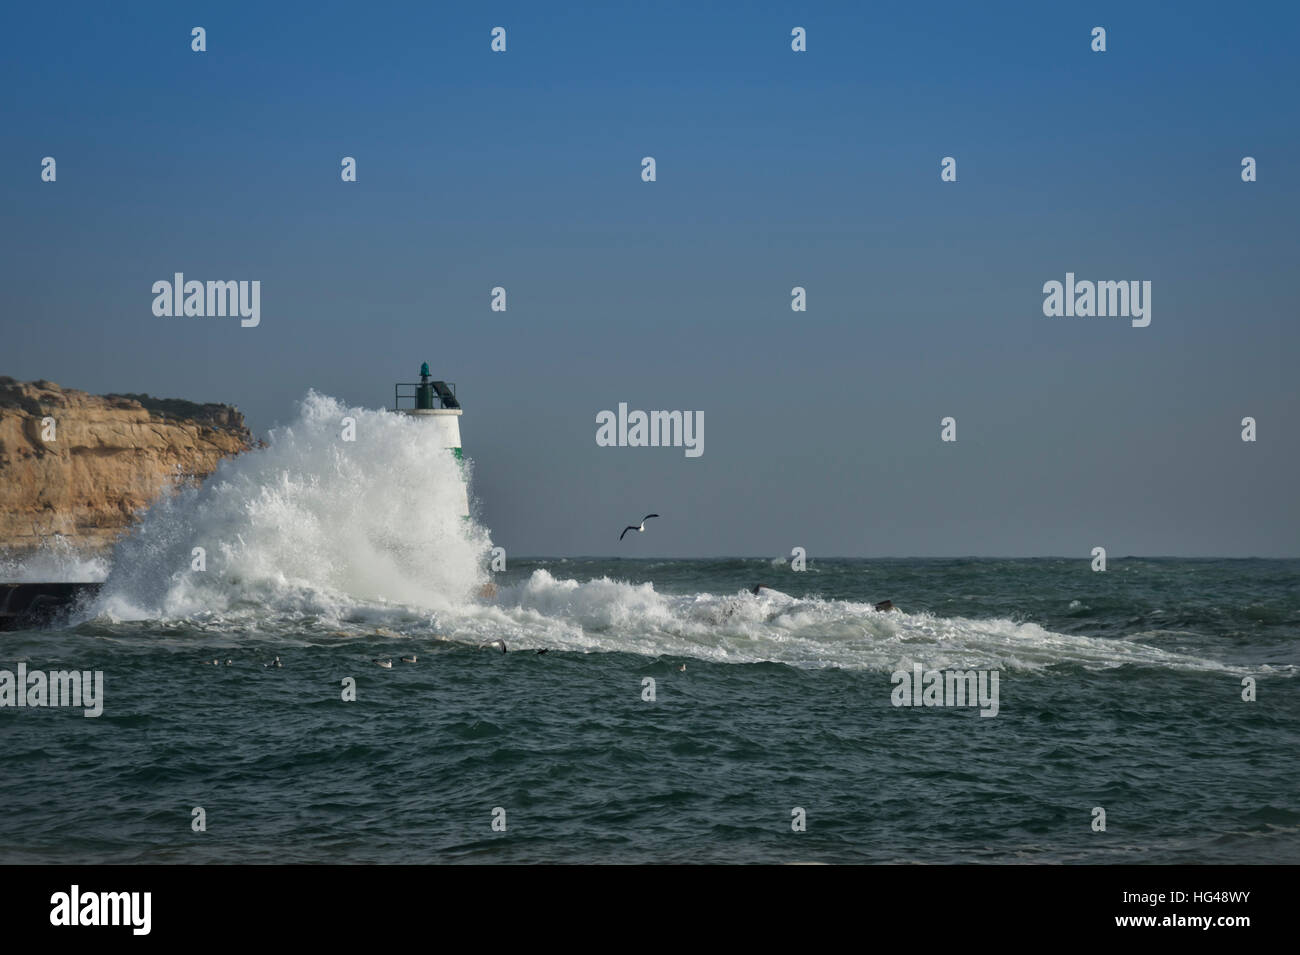 Portimao navigation mark with crashing waves - Stock Image